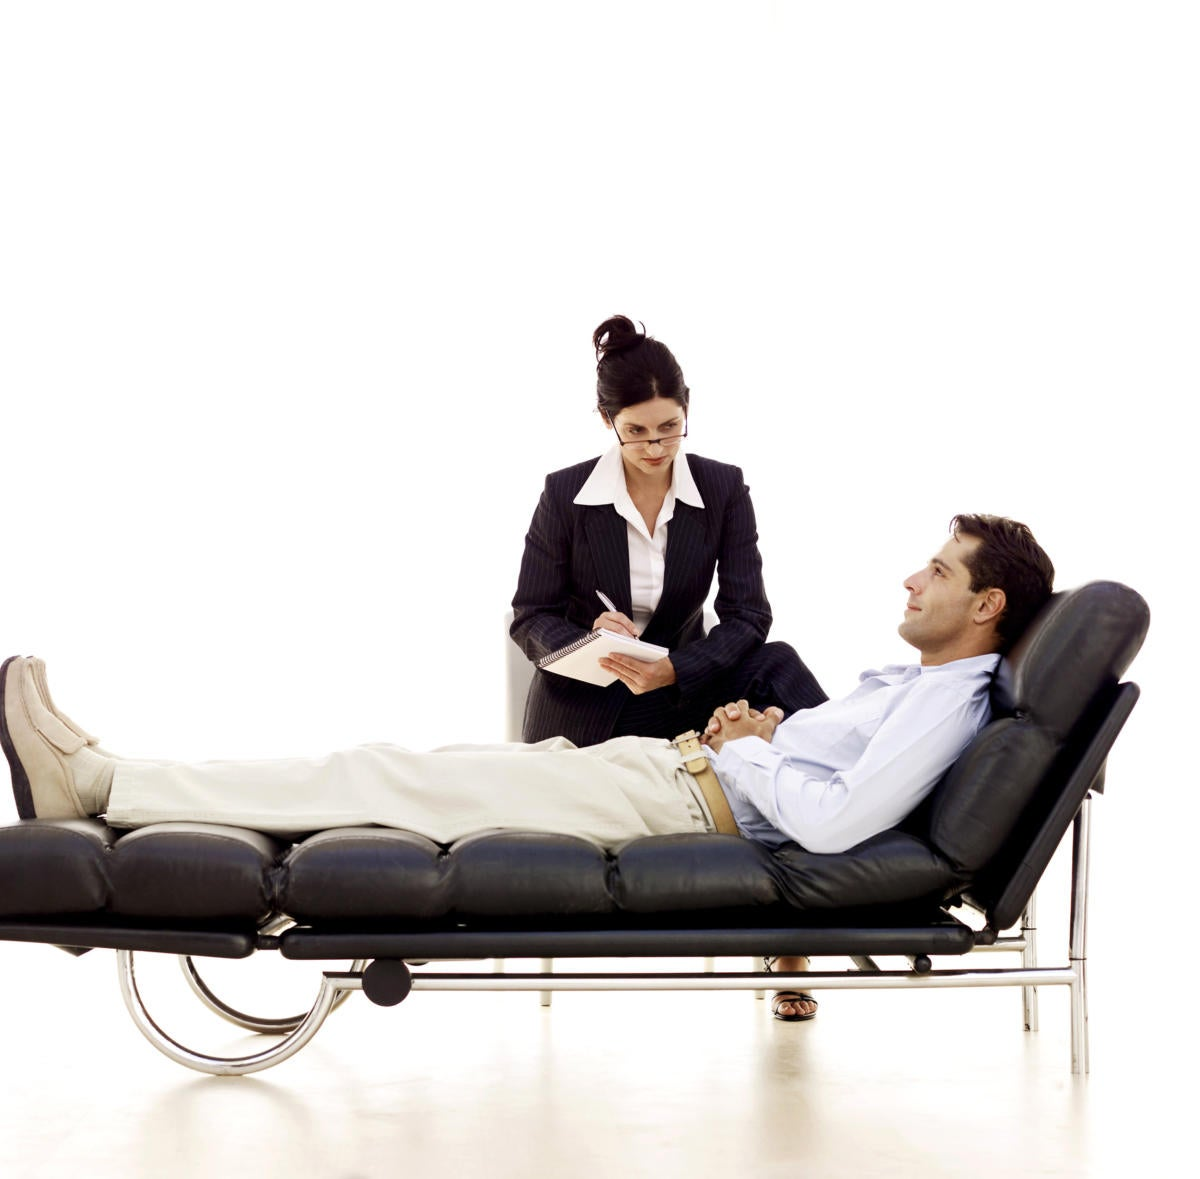 Man laying on psychiatrists couch getting therapy